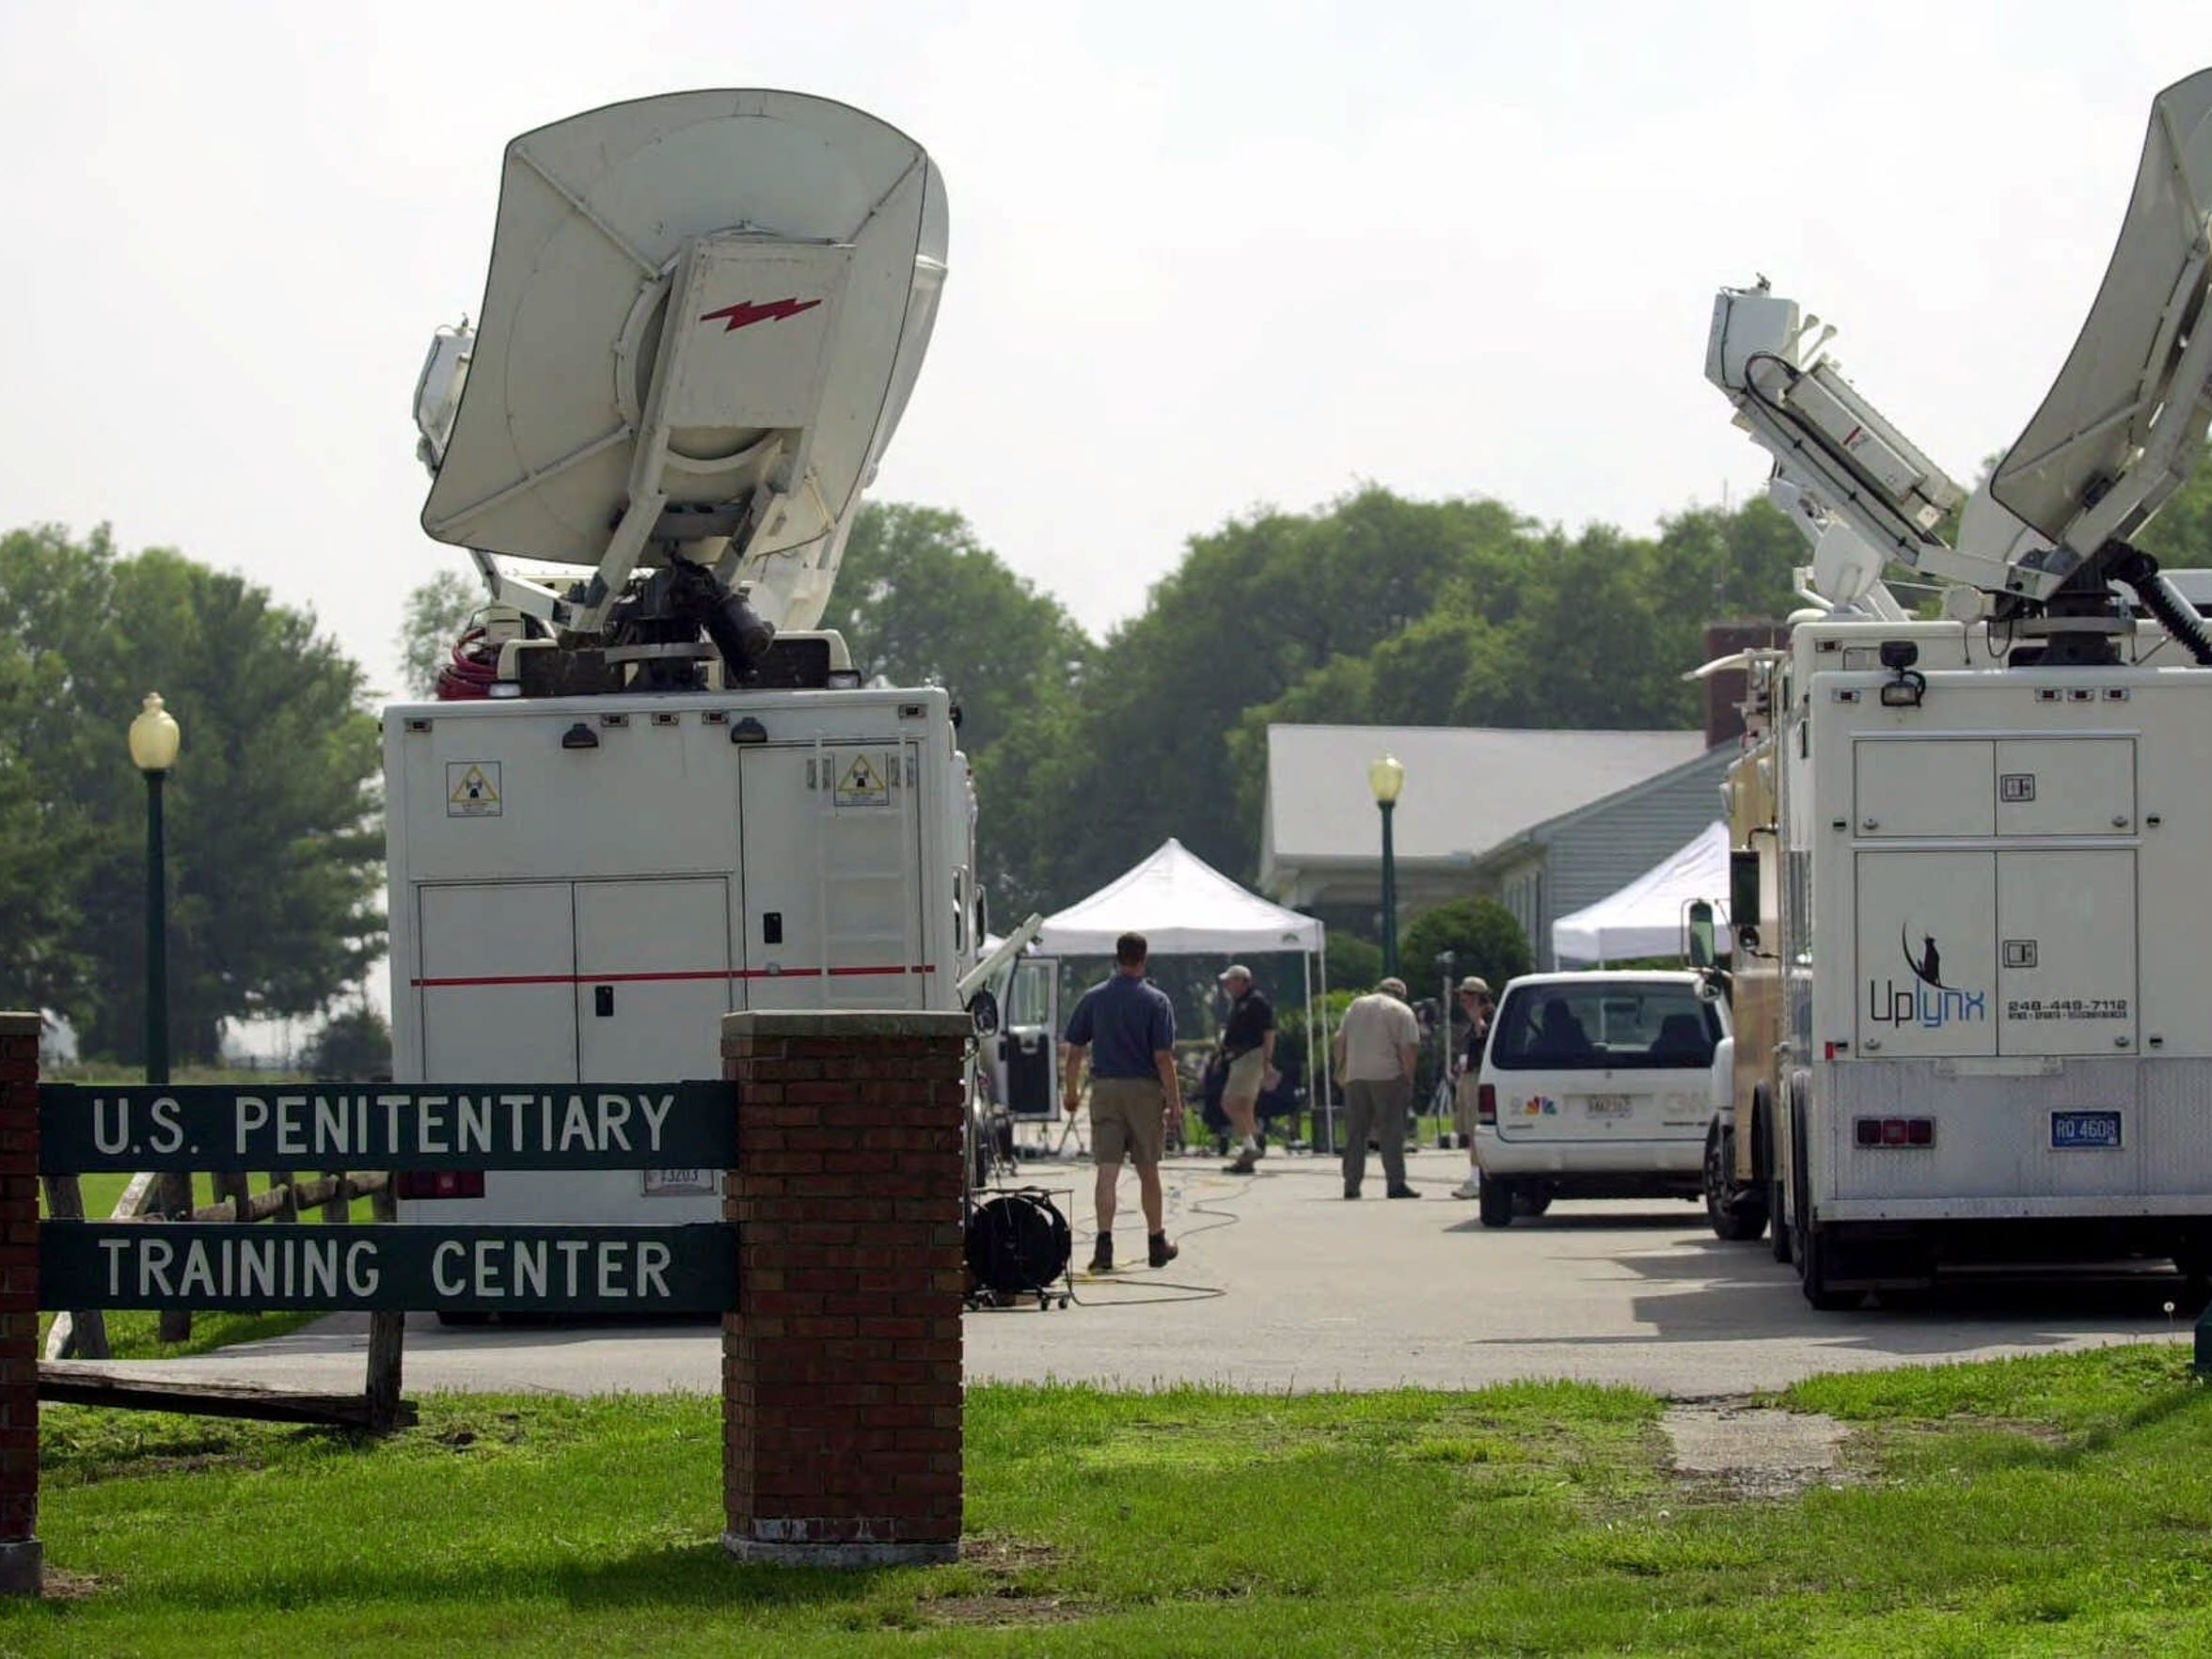 Satellite trucks arrive in the parking lot of the federal prison facility in Terre Haute, Ind., on June 7, 2001, as national media prepare to cover the execution of Timothy McVeigh.